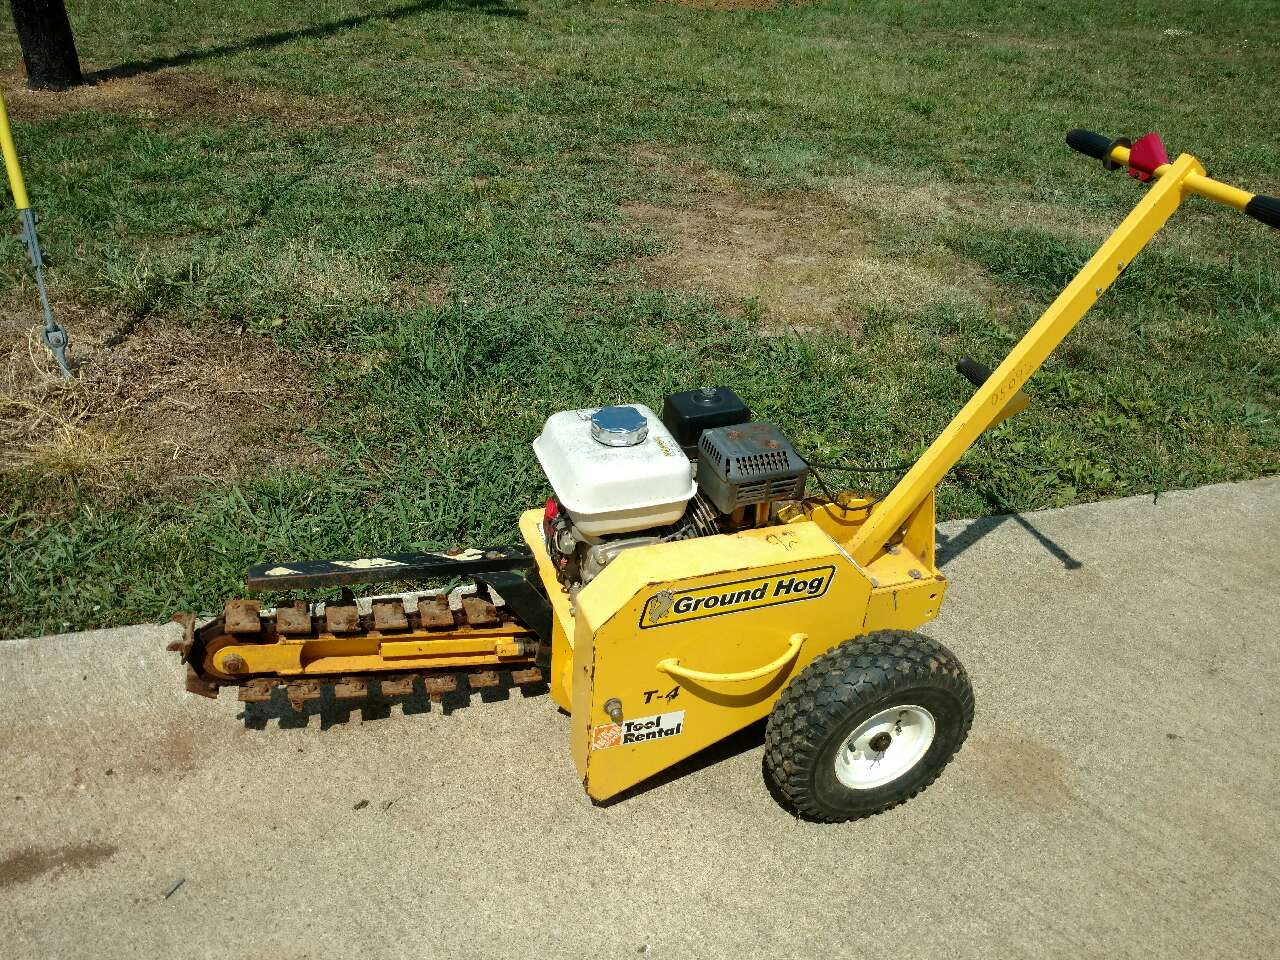 Groundhog Trencher - Year of Clean Water